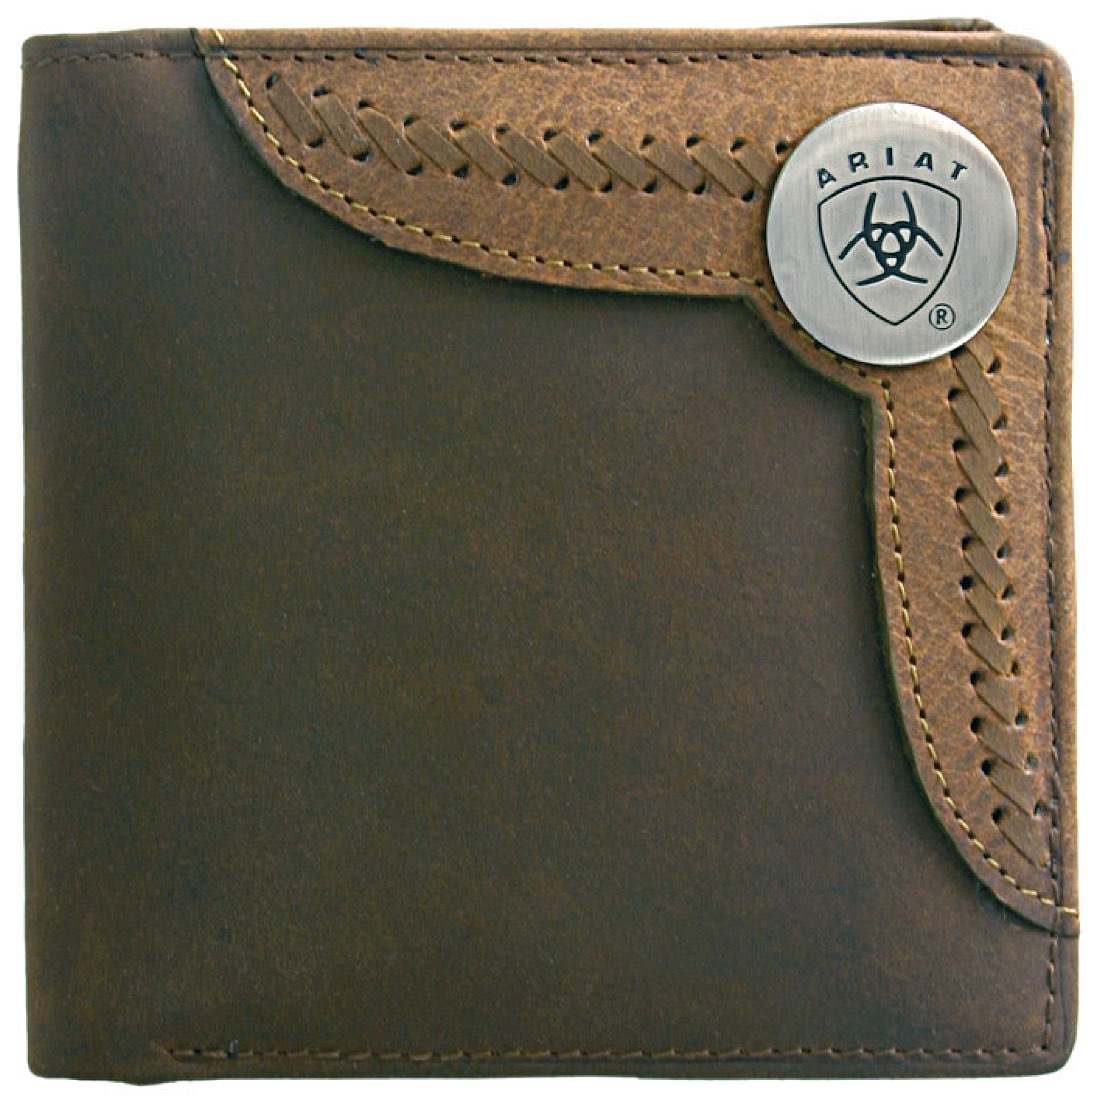 Bi Fold Wallet-Brown / Lite Tan WLT2103A